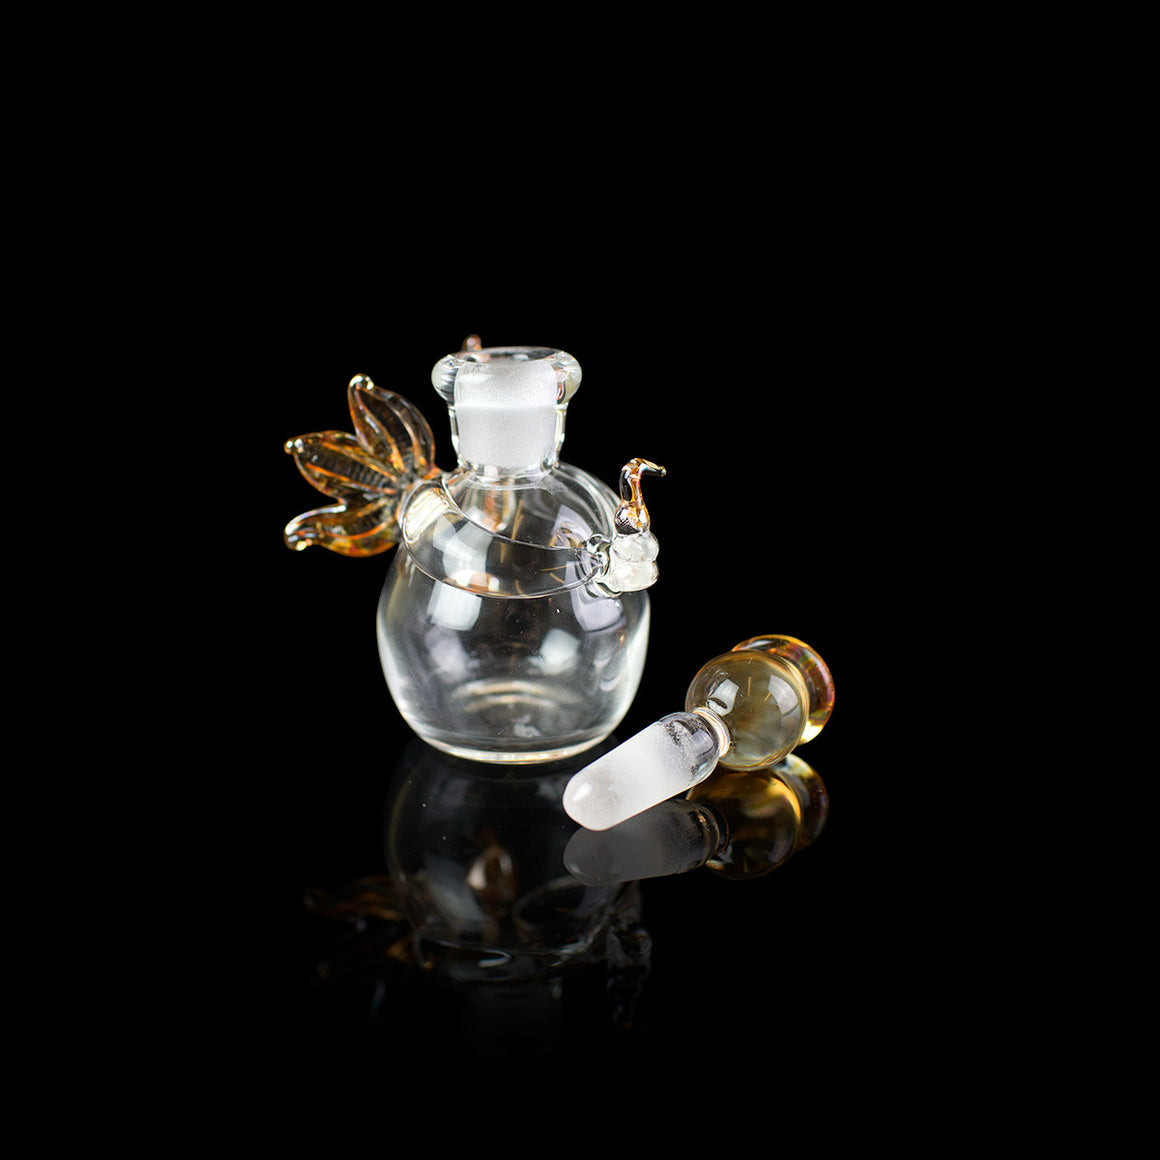 Glass Angel mini decanter handmade by Angels' Share Glass